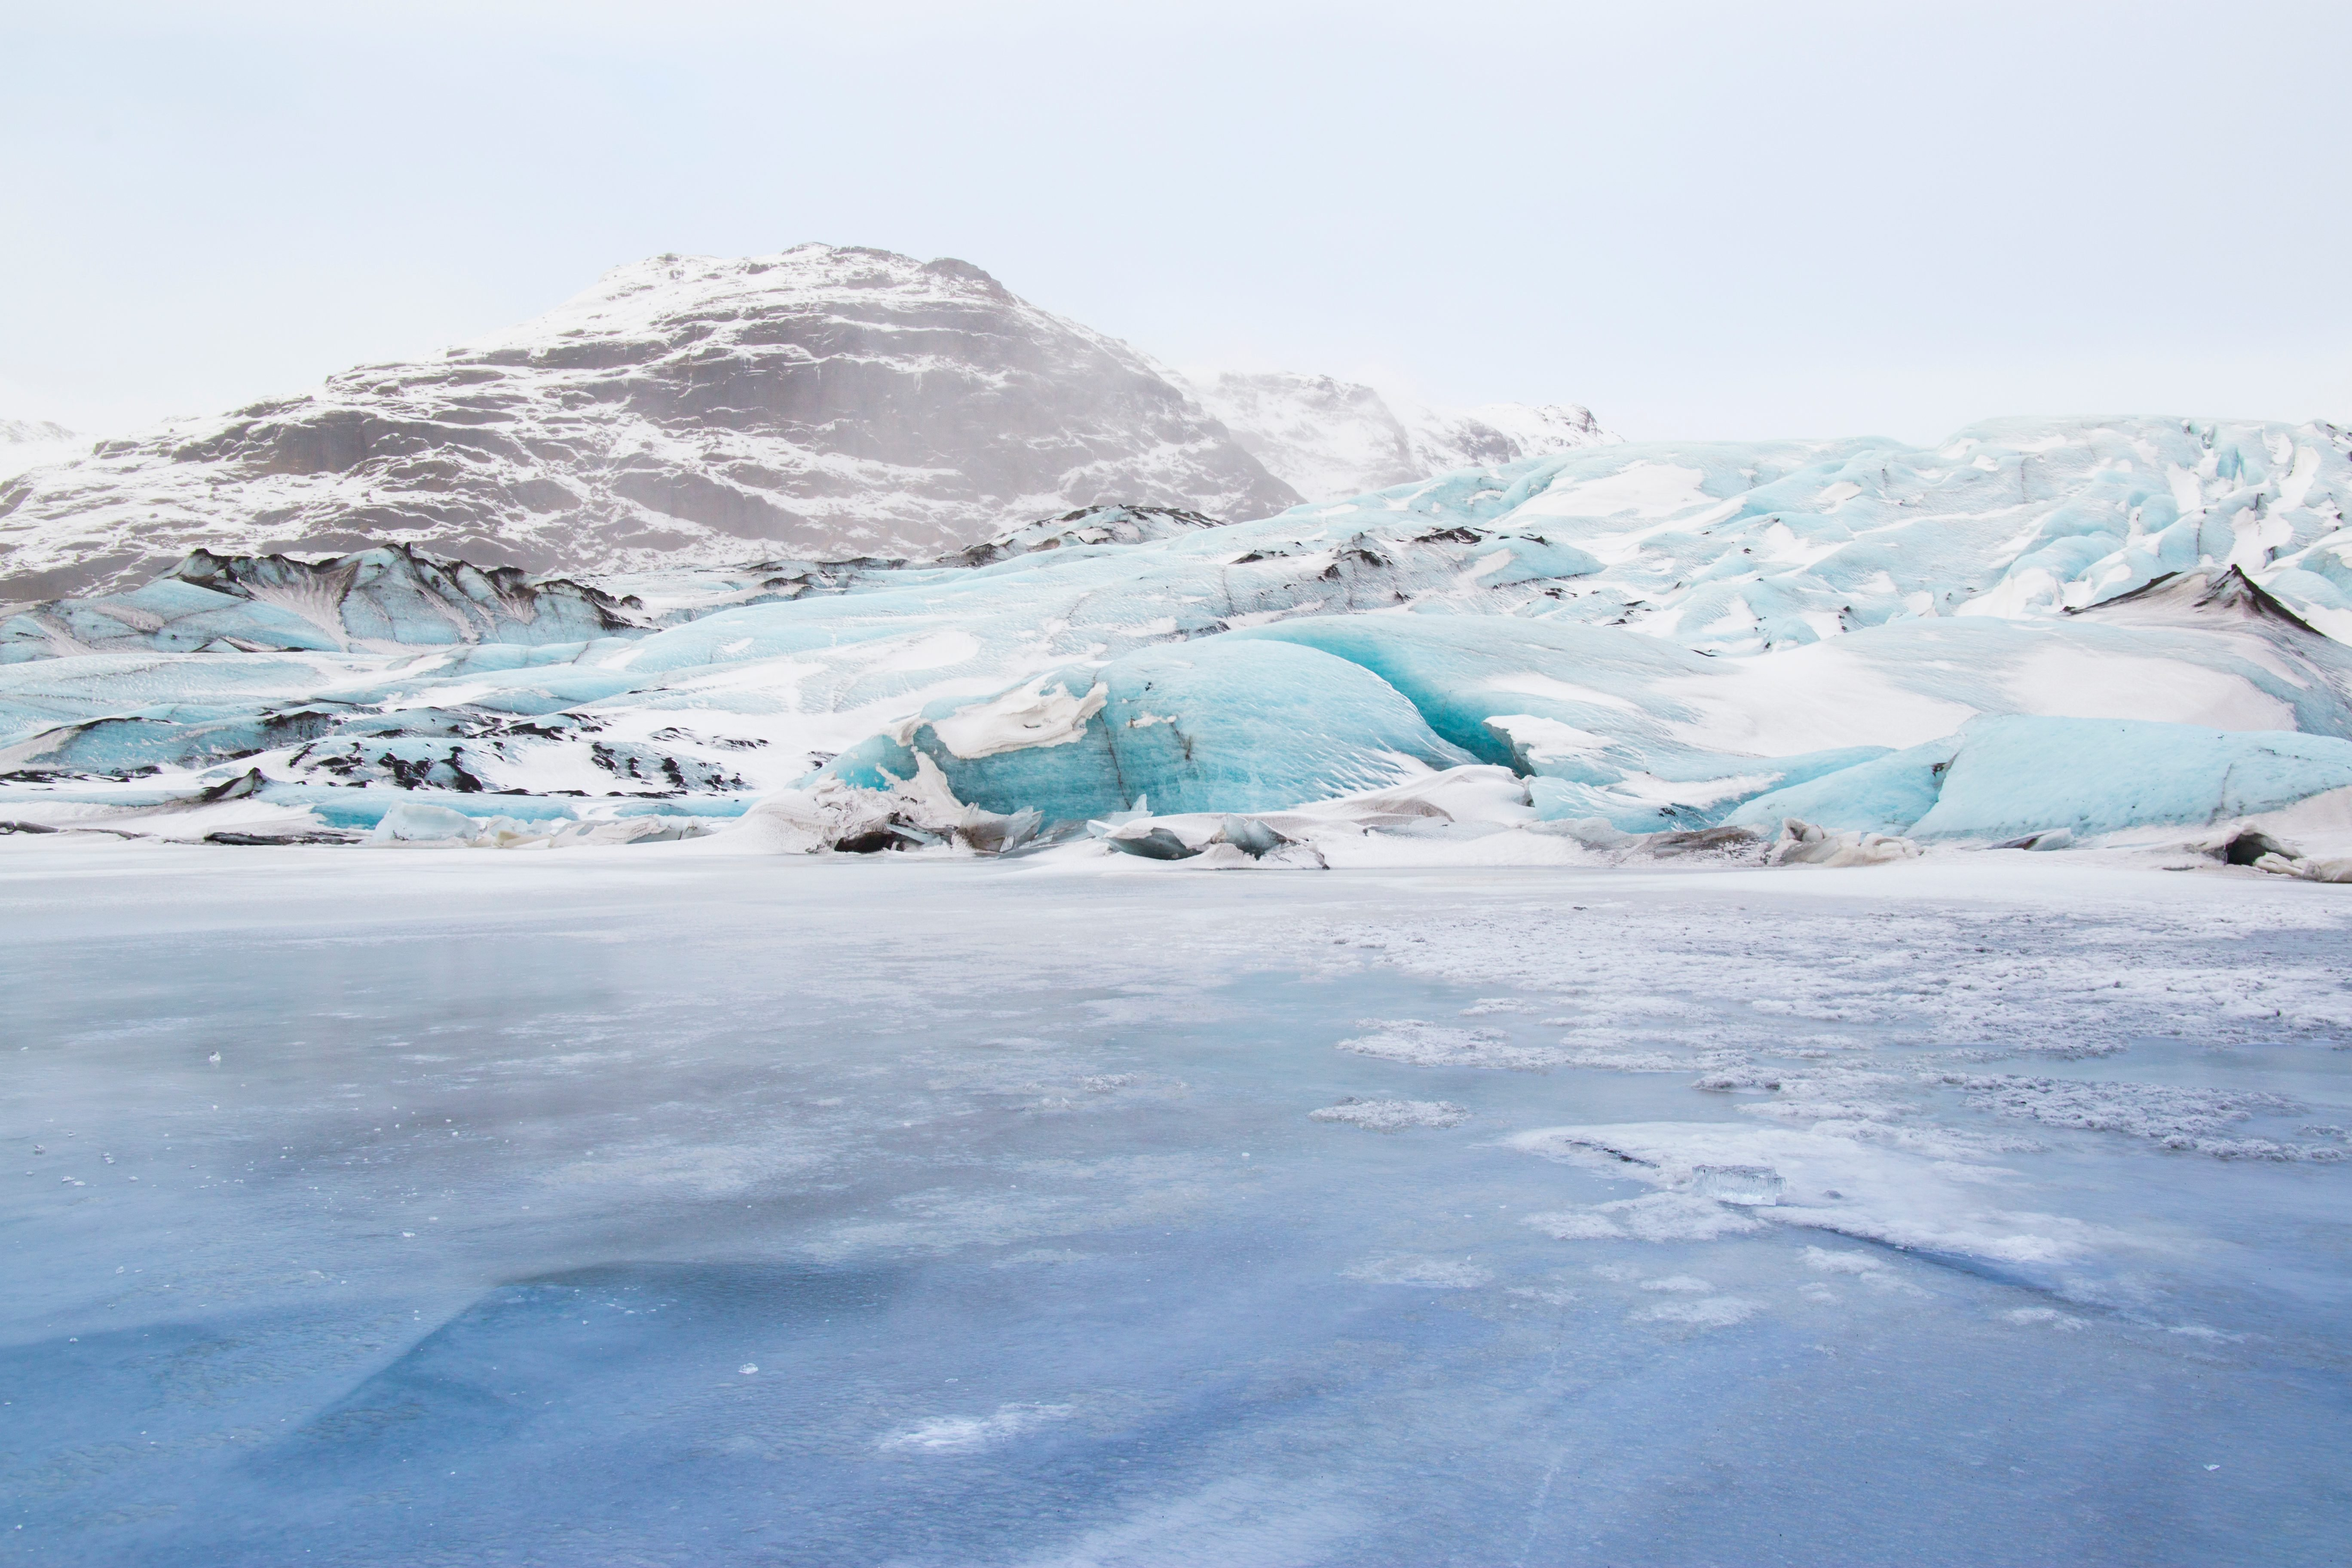 Solheimajokull glacier (Sólheimajökull) in the south of Iceland is popular with ice climbers and a popular tourist location owing to its size and relative ease of access.